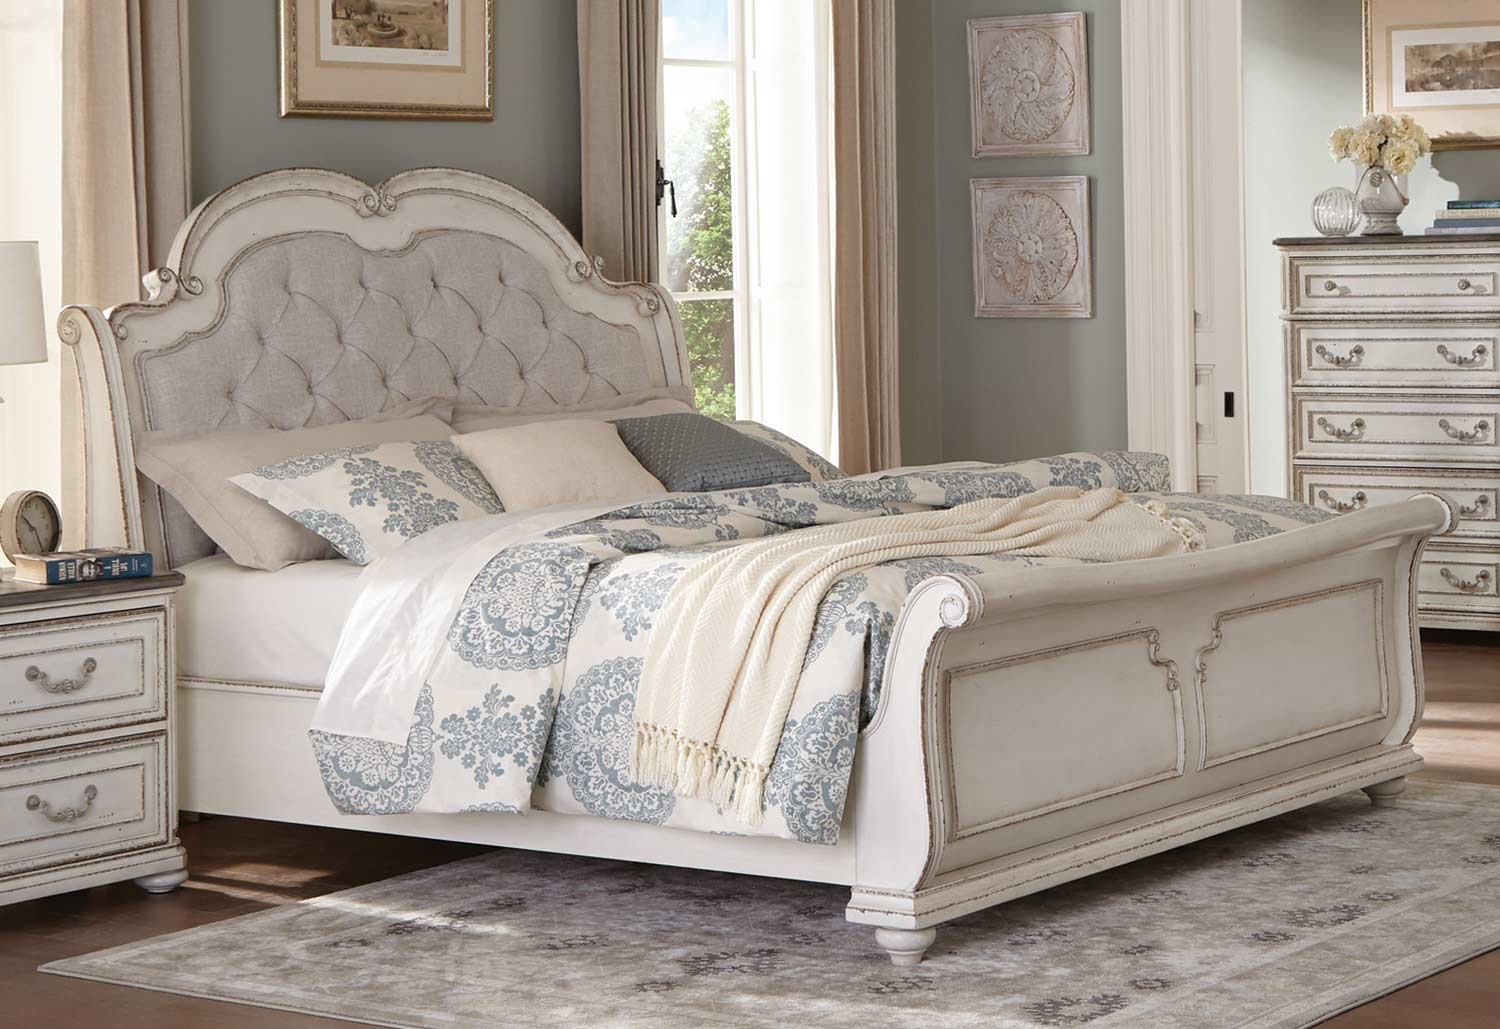 Homelegance Willowick Bed - Antique White